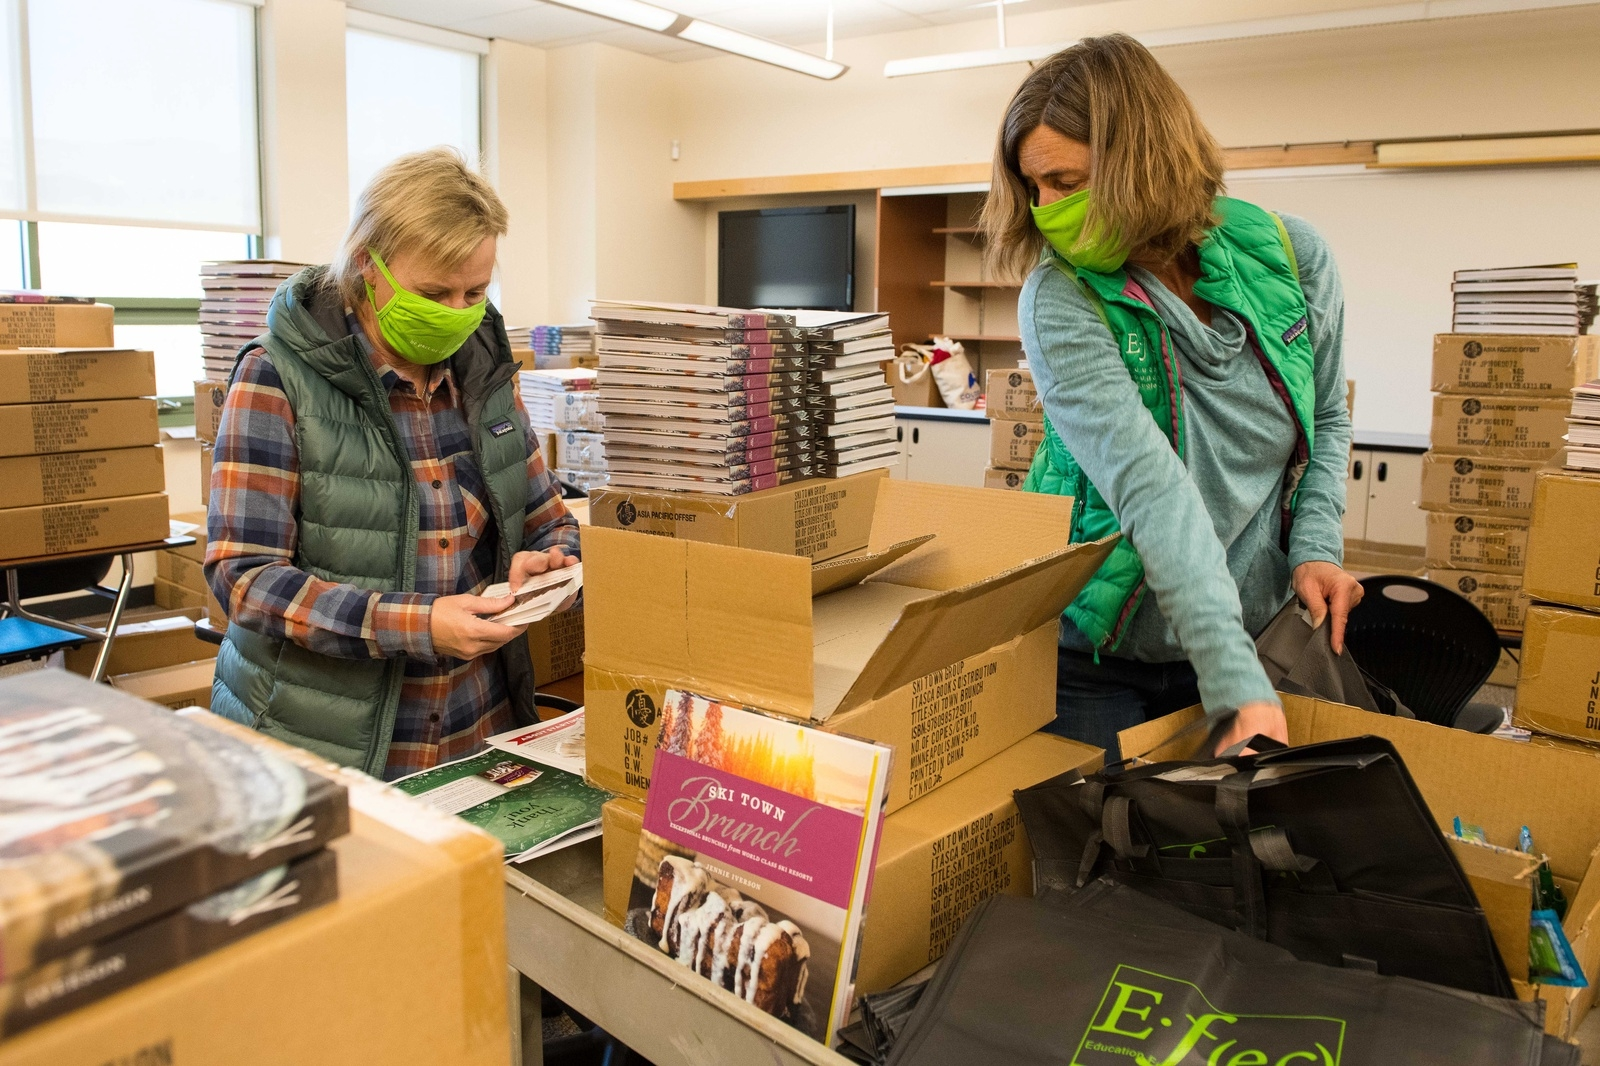 Wendy Rimel, left, and Heidi Trueblood pack gift bags for Eagle County Schools employees Thursday morning. The Education Foundation of Eagle County is delivering a gift bag to every school district employee, to show appreciation and give thanks for their hard work to keep students learning and students and teachers safe during the coronavirus pandemic.